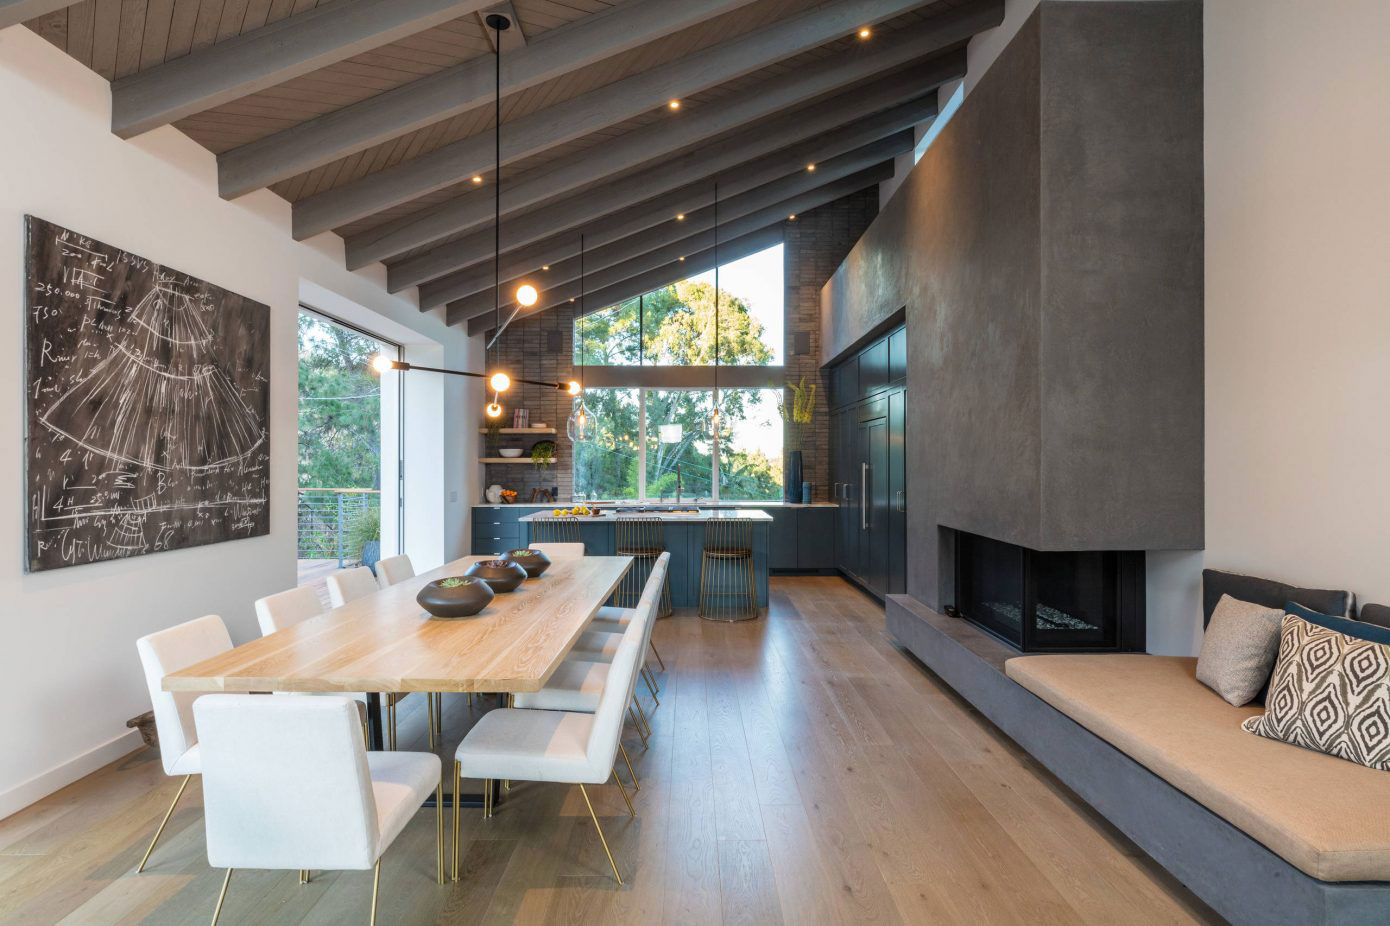 Dining space, fireplace, kitchen